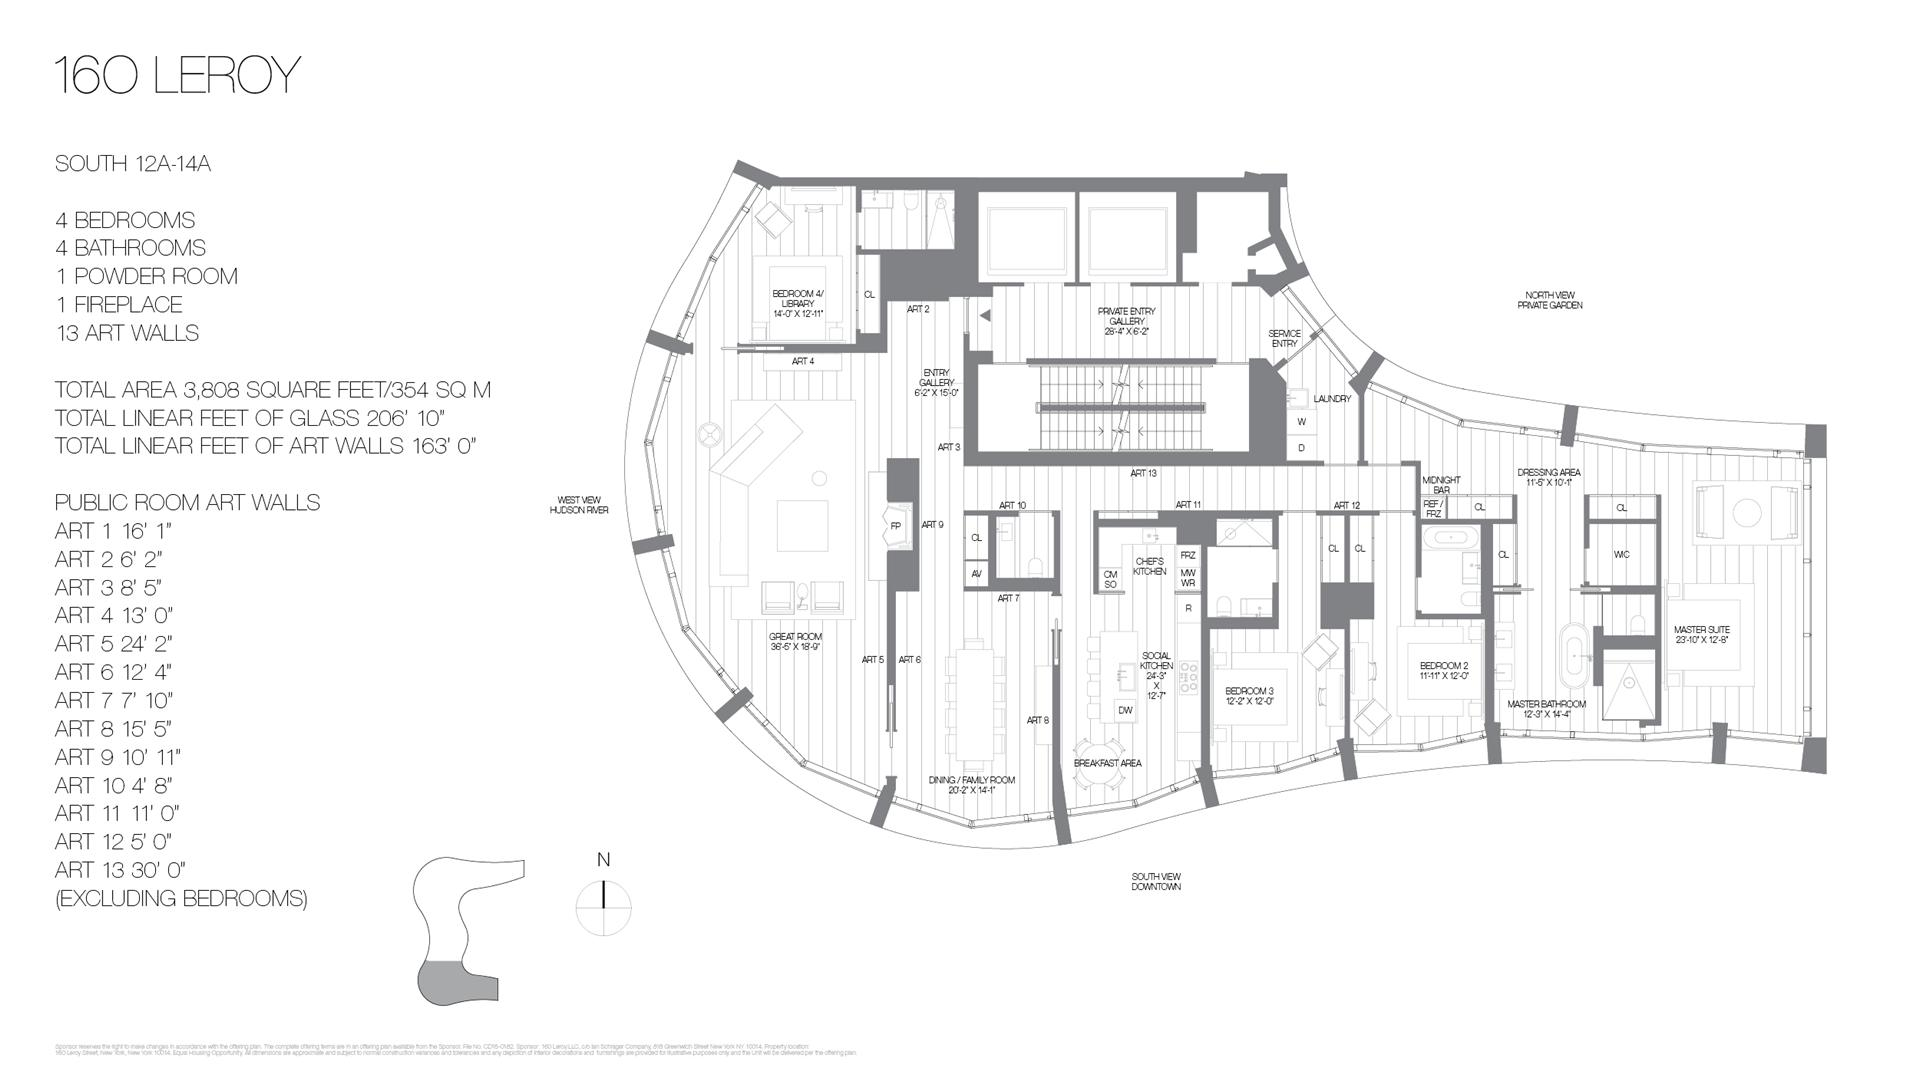 Floor plan of 160 Leroy St, SOUTH14A - West Village - Meatpacking District, New York